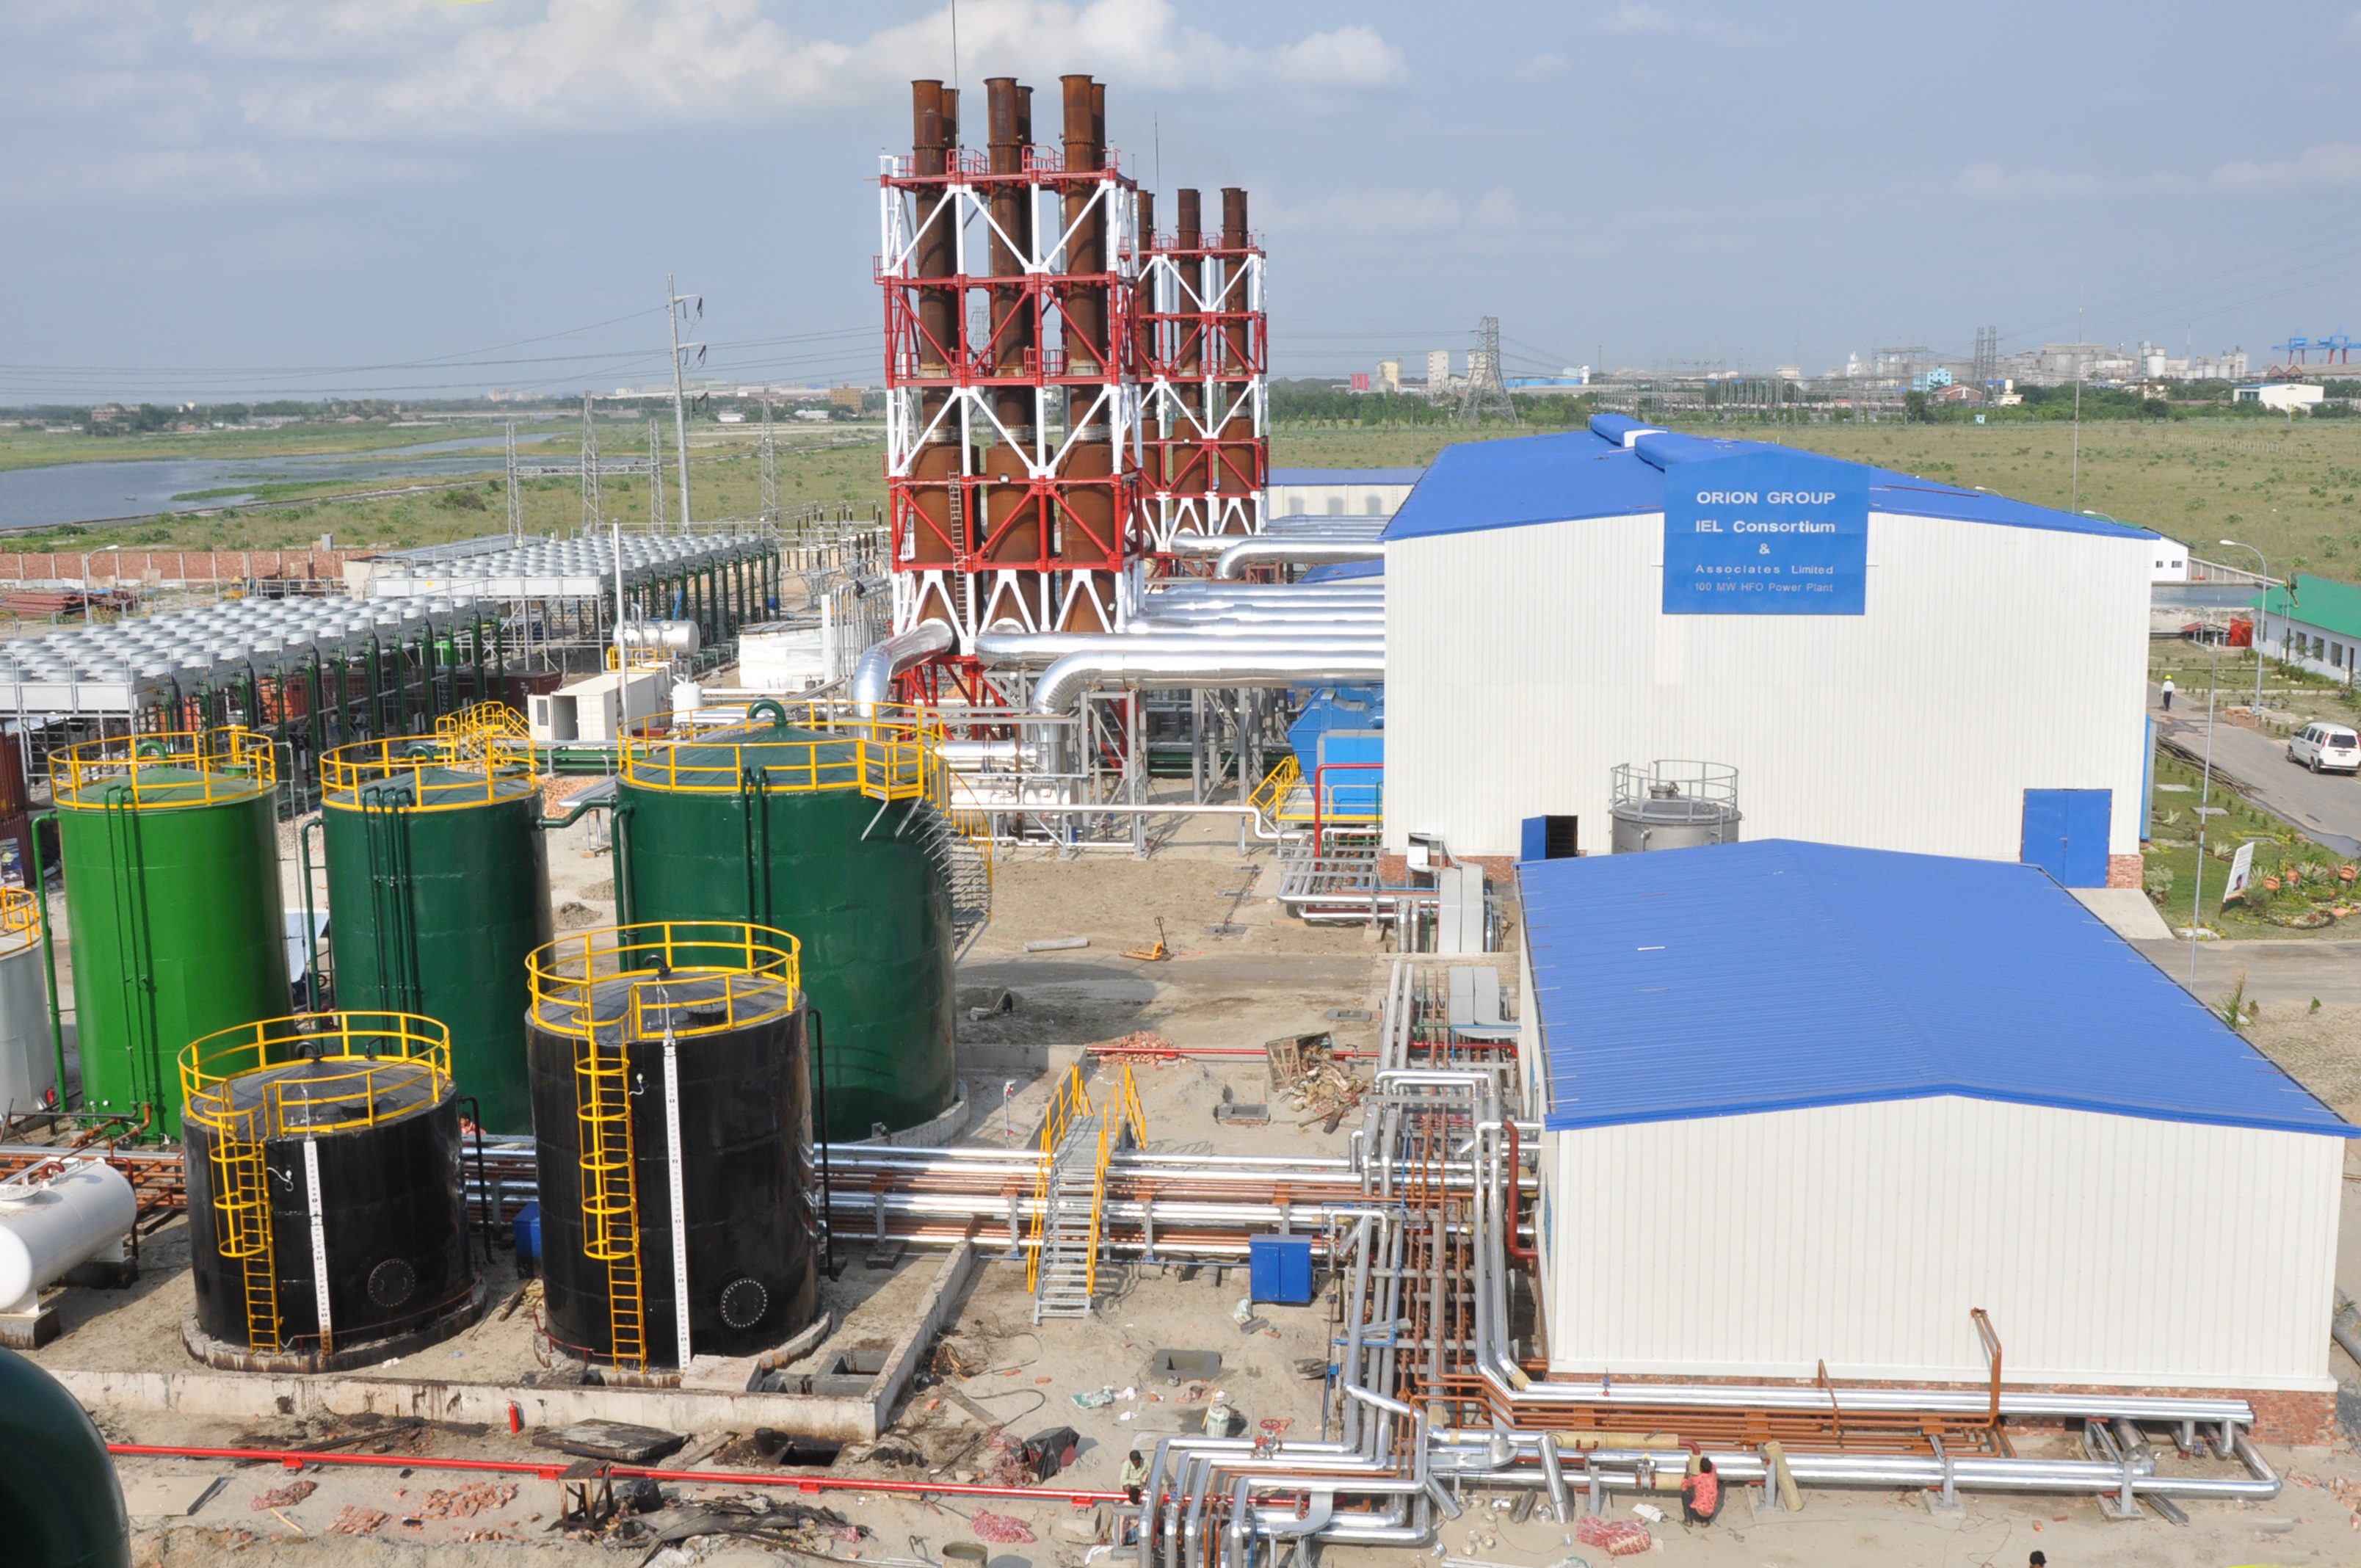 File:ORION Group constructed two 100 MW HFO based powerplant